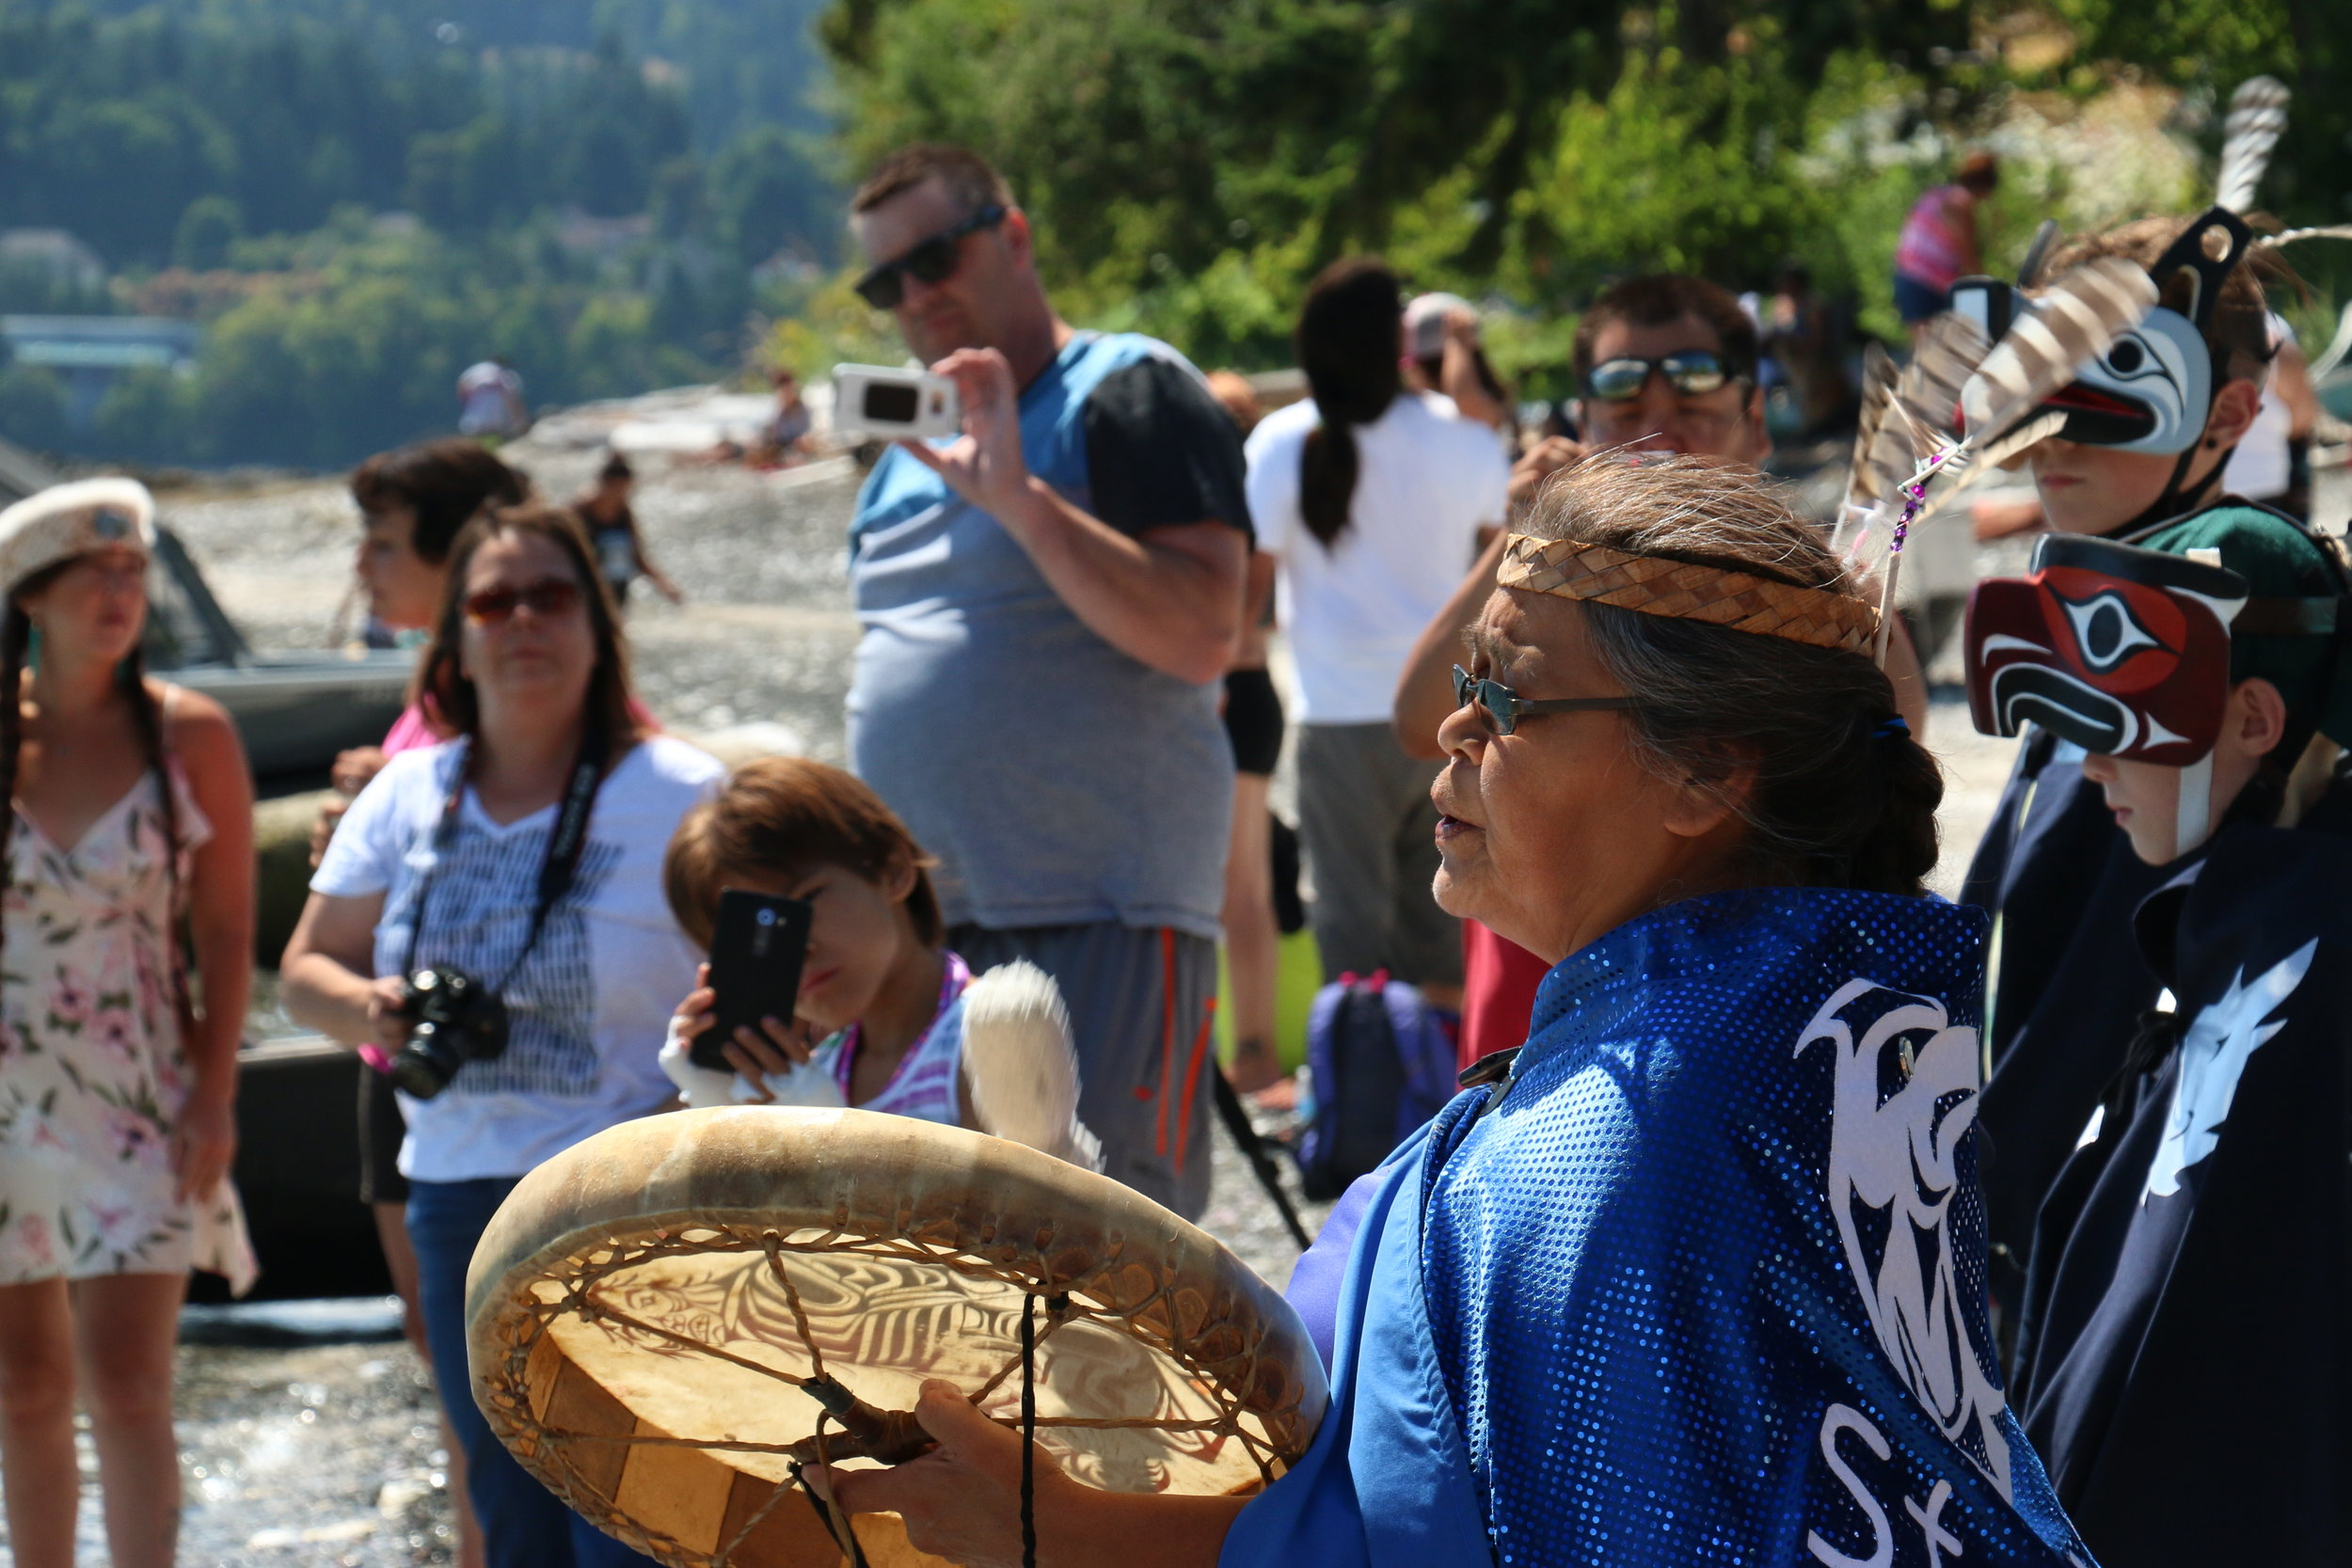 A Chemainus delegation welcomes canoes ashore on the 2017 Tribal Canoe Journey. (Julian Brave NoiseCat)